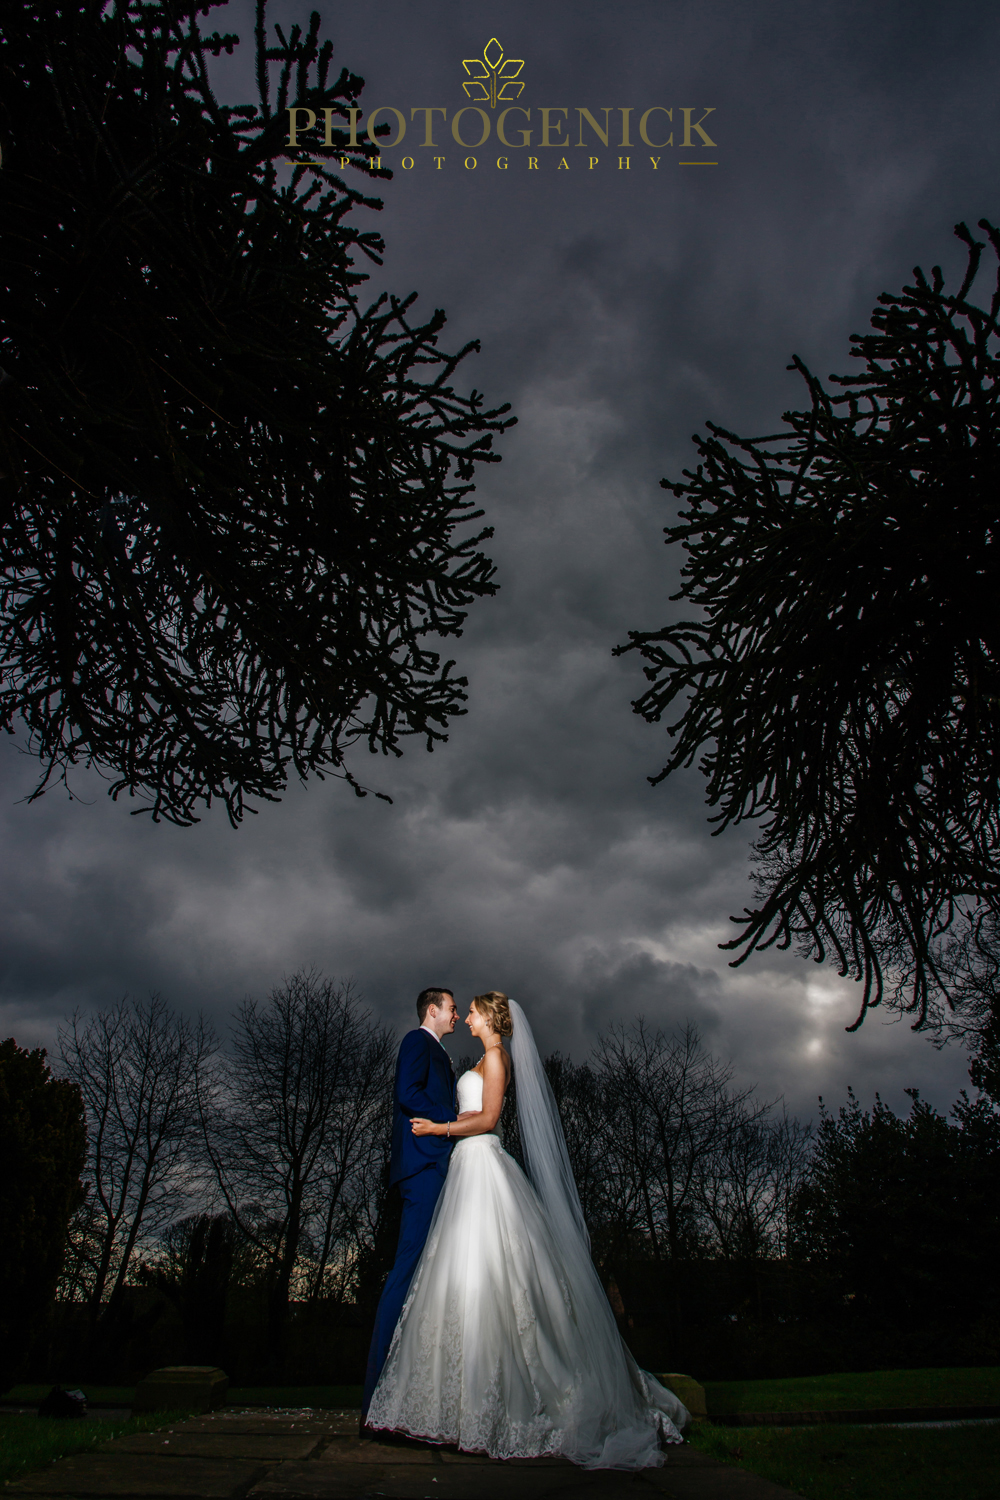 affordable wedding photography sheffield